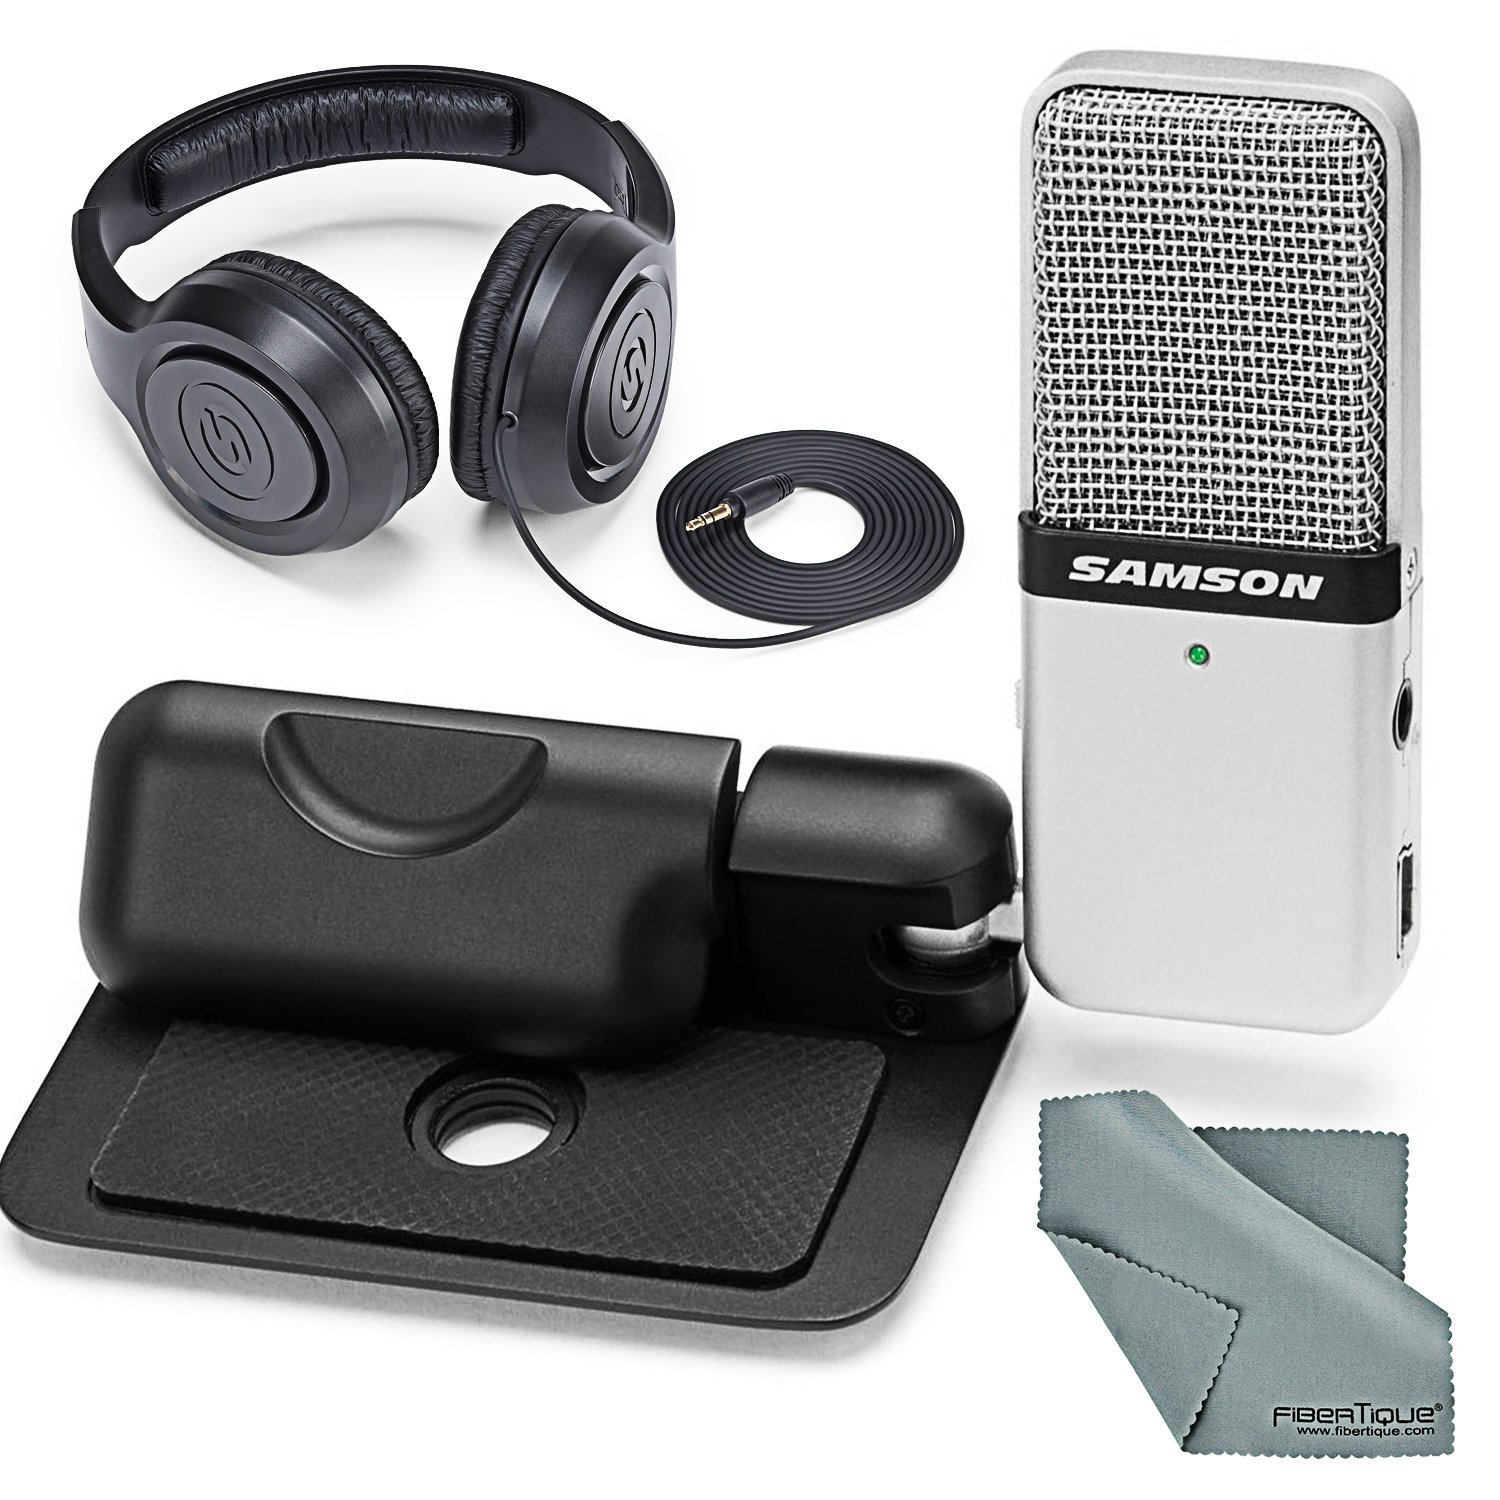 Samson Go Mic Portable USB Microphone for Mac & PC (Silver) and Accessory Bundle With Closed-Back Stereo Headphones + Fibertique Cleaning Cloth by Photo Savings